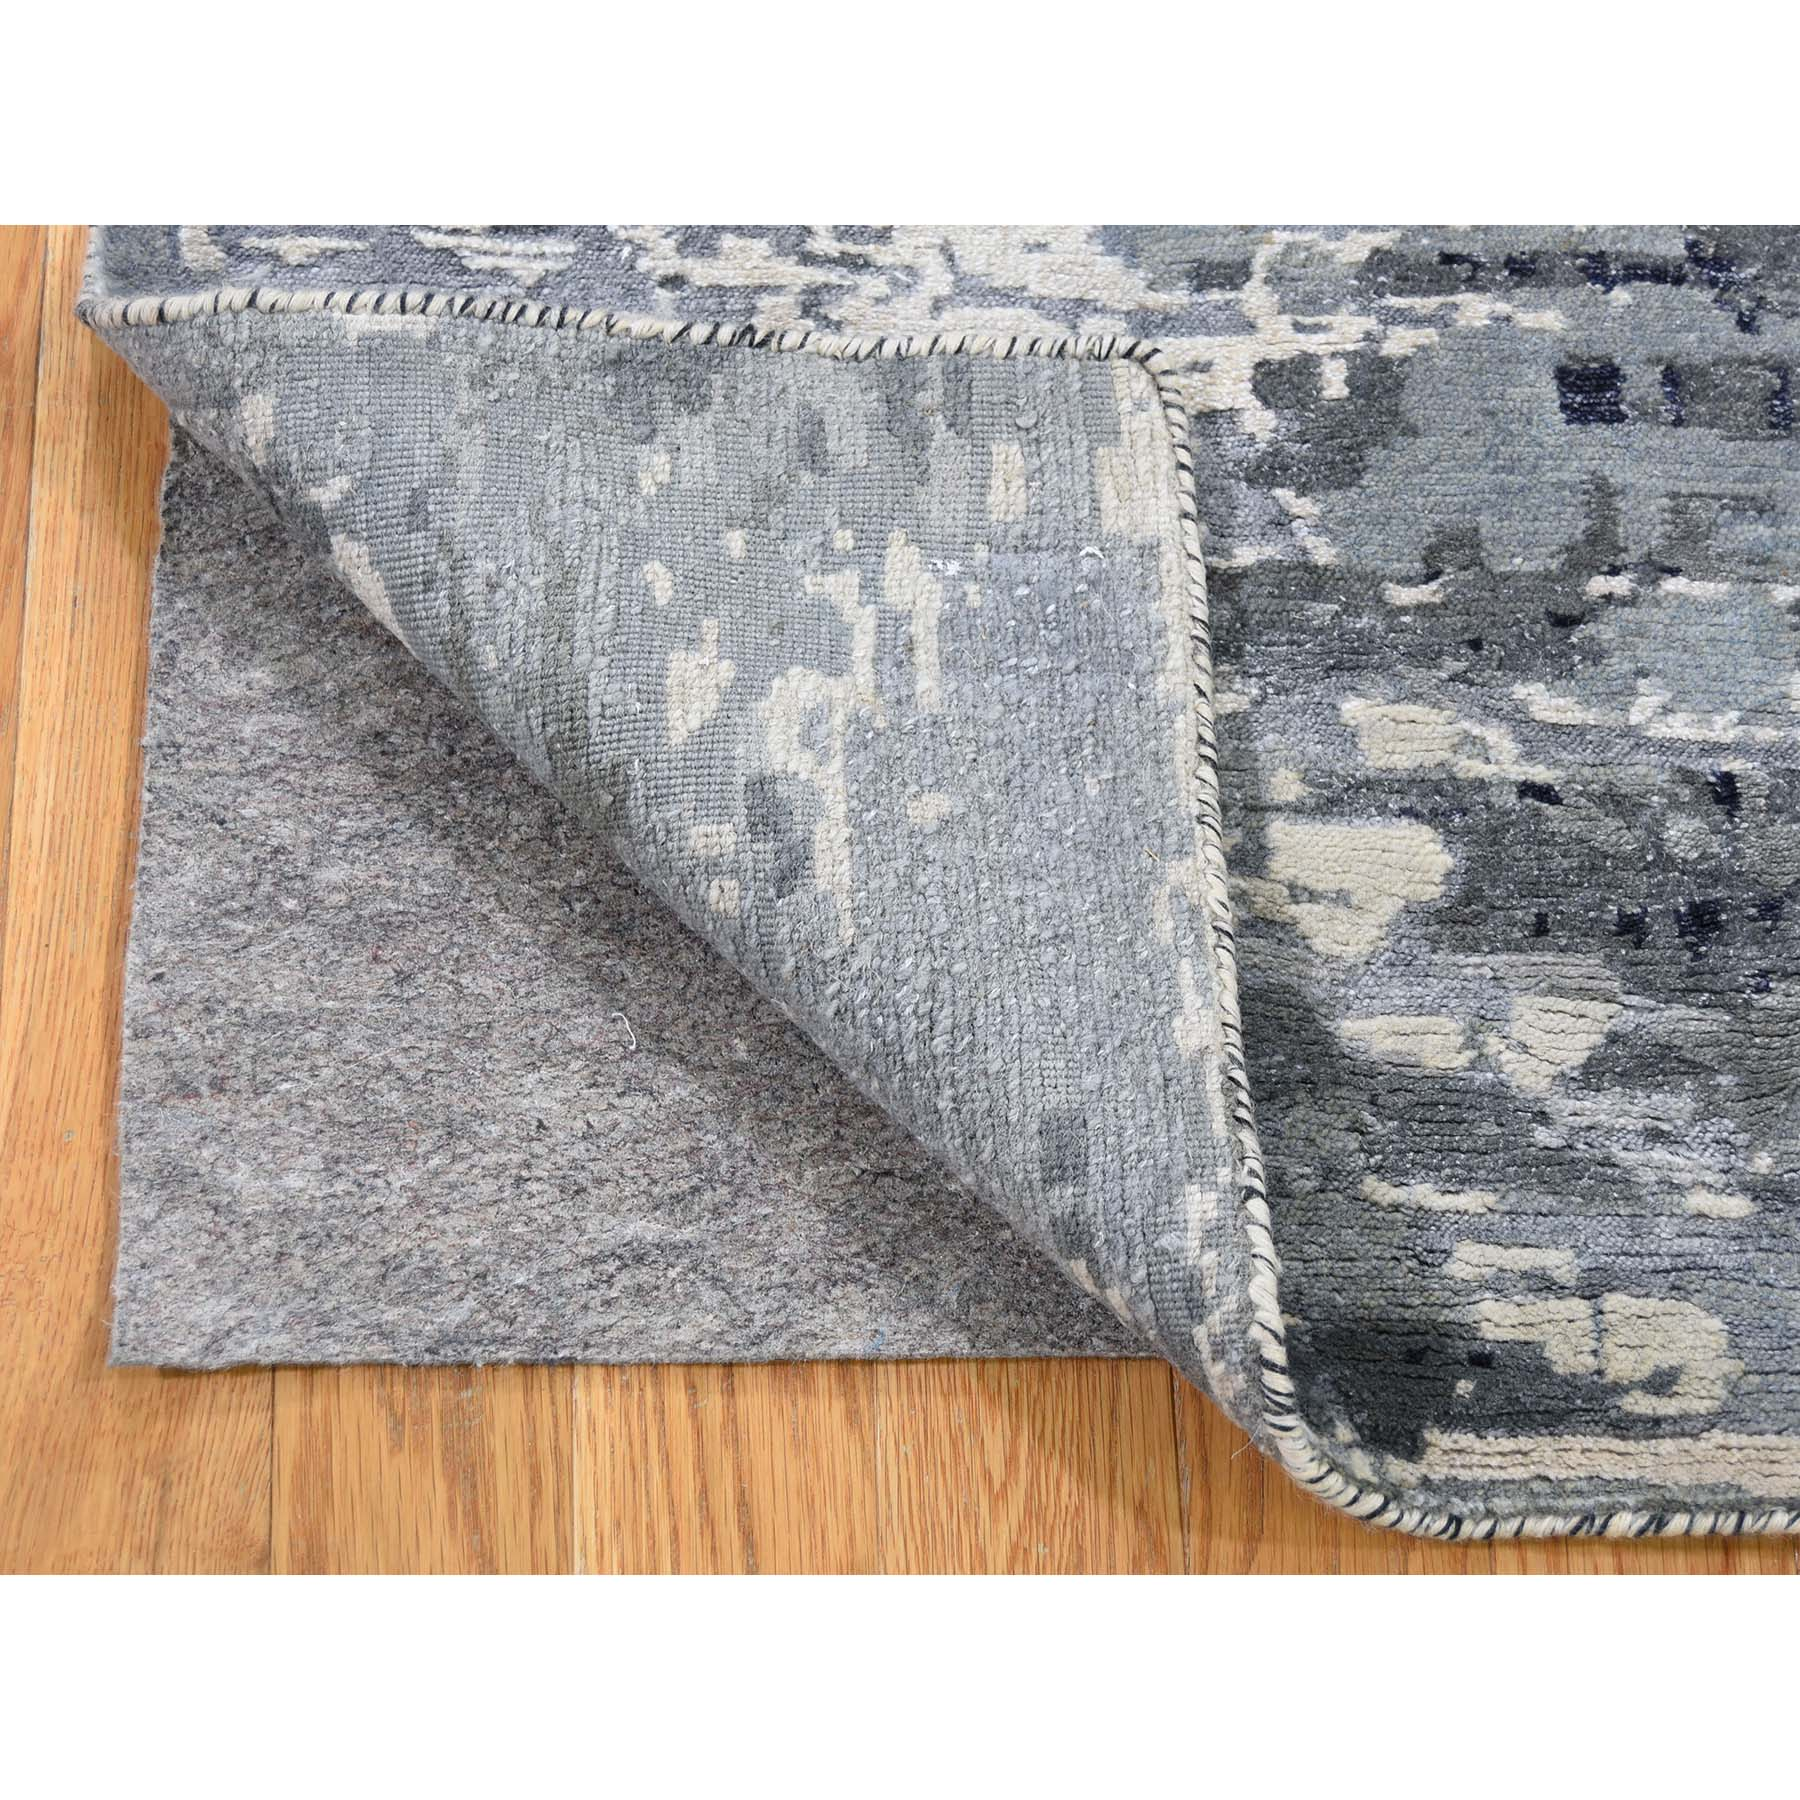 2-x3- Hi-Low Pile Abstract Design Wool And Silk Hand-Knotted Oriental Rug Mat